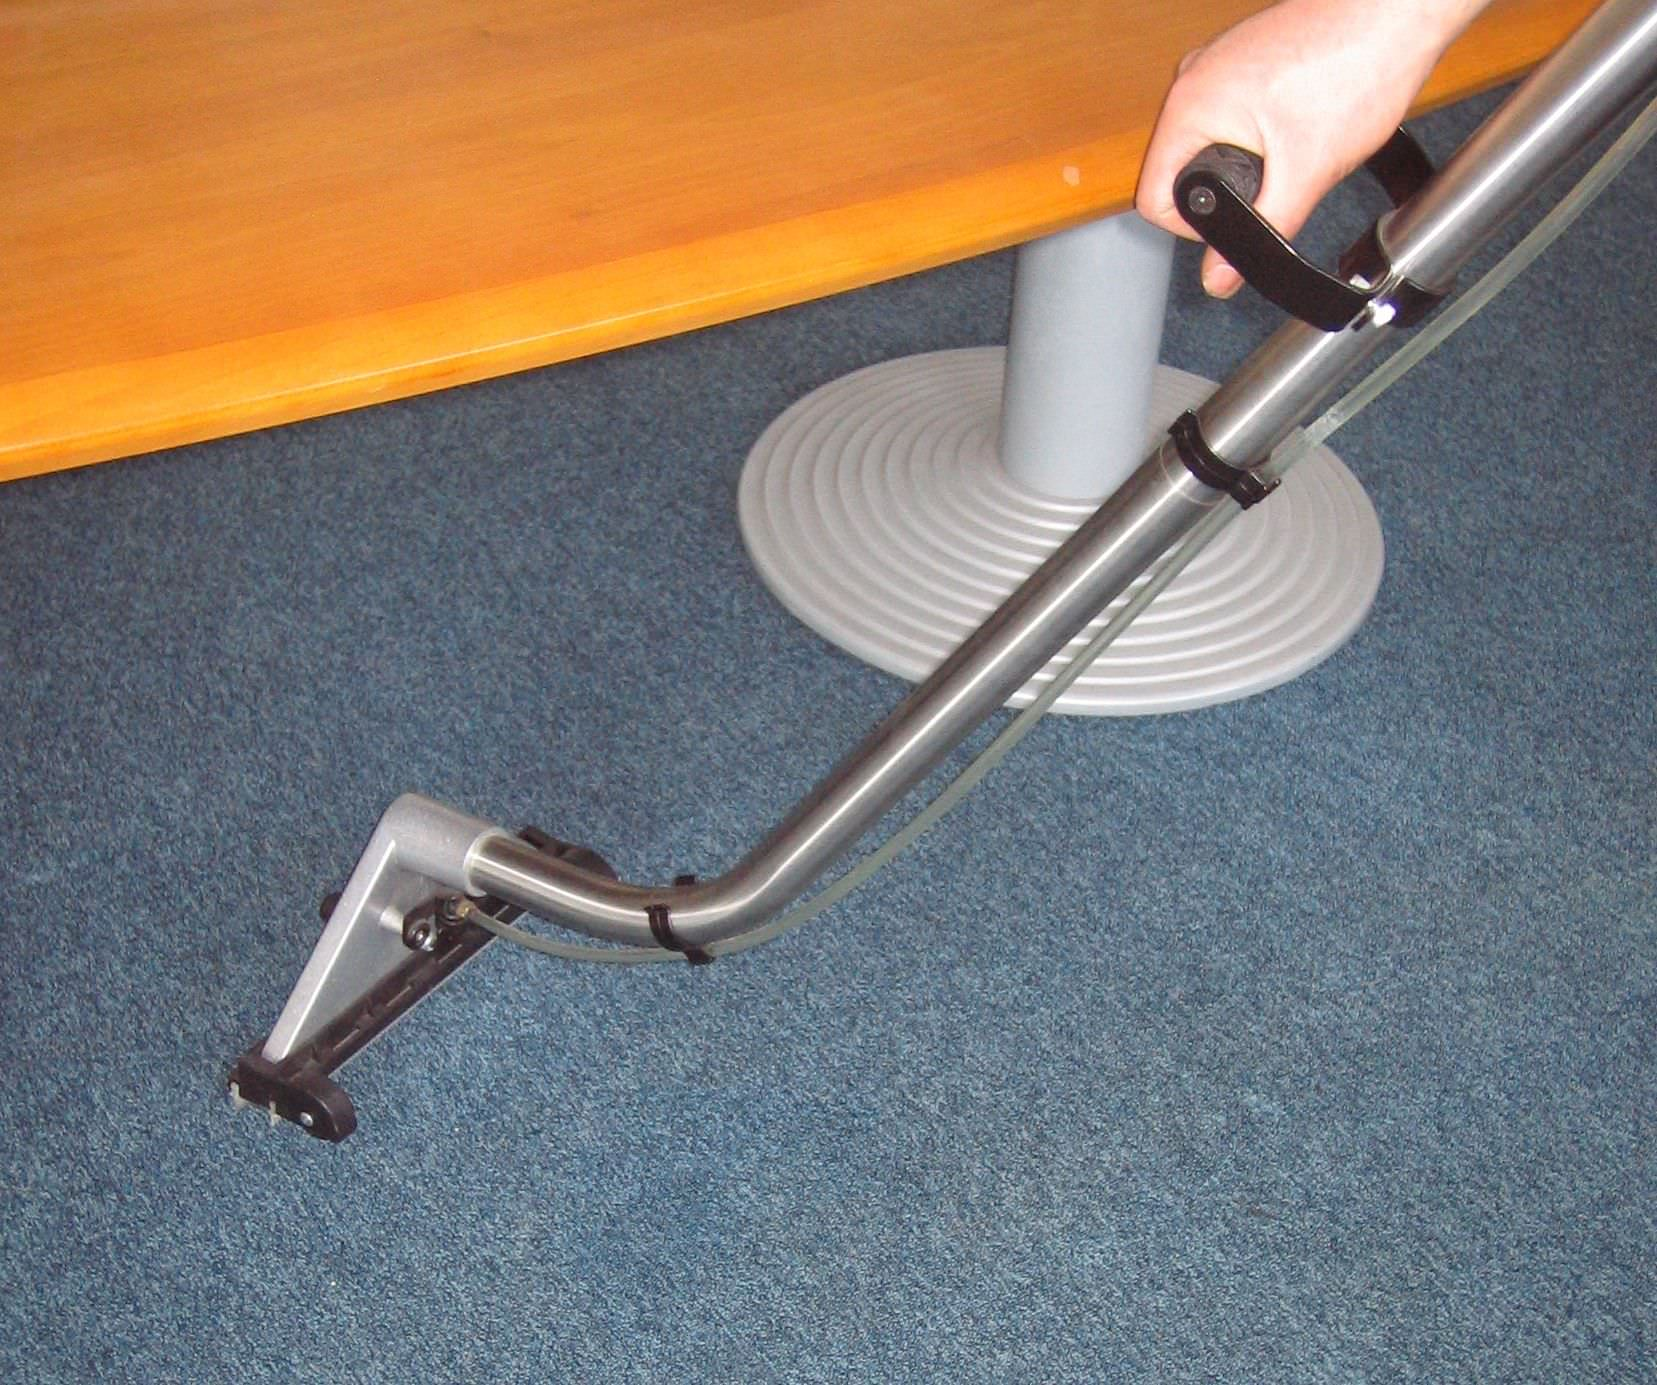 Carpet Cleaning Fremont Allure Carpet Cleaning